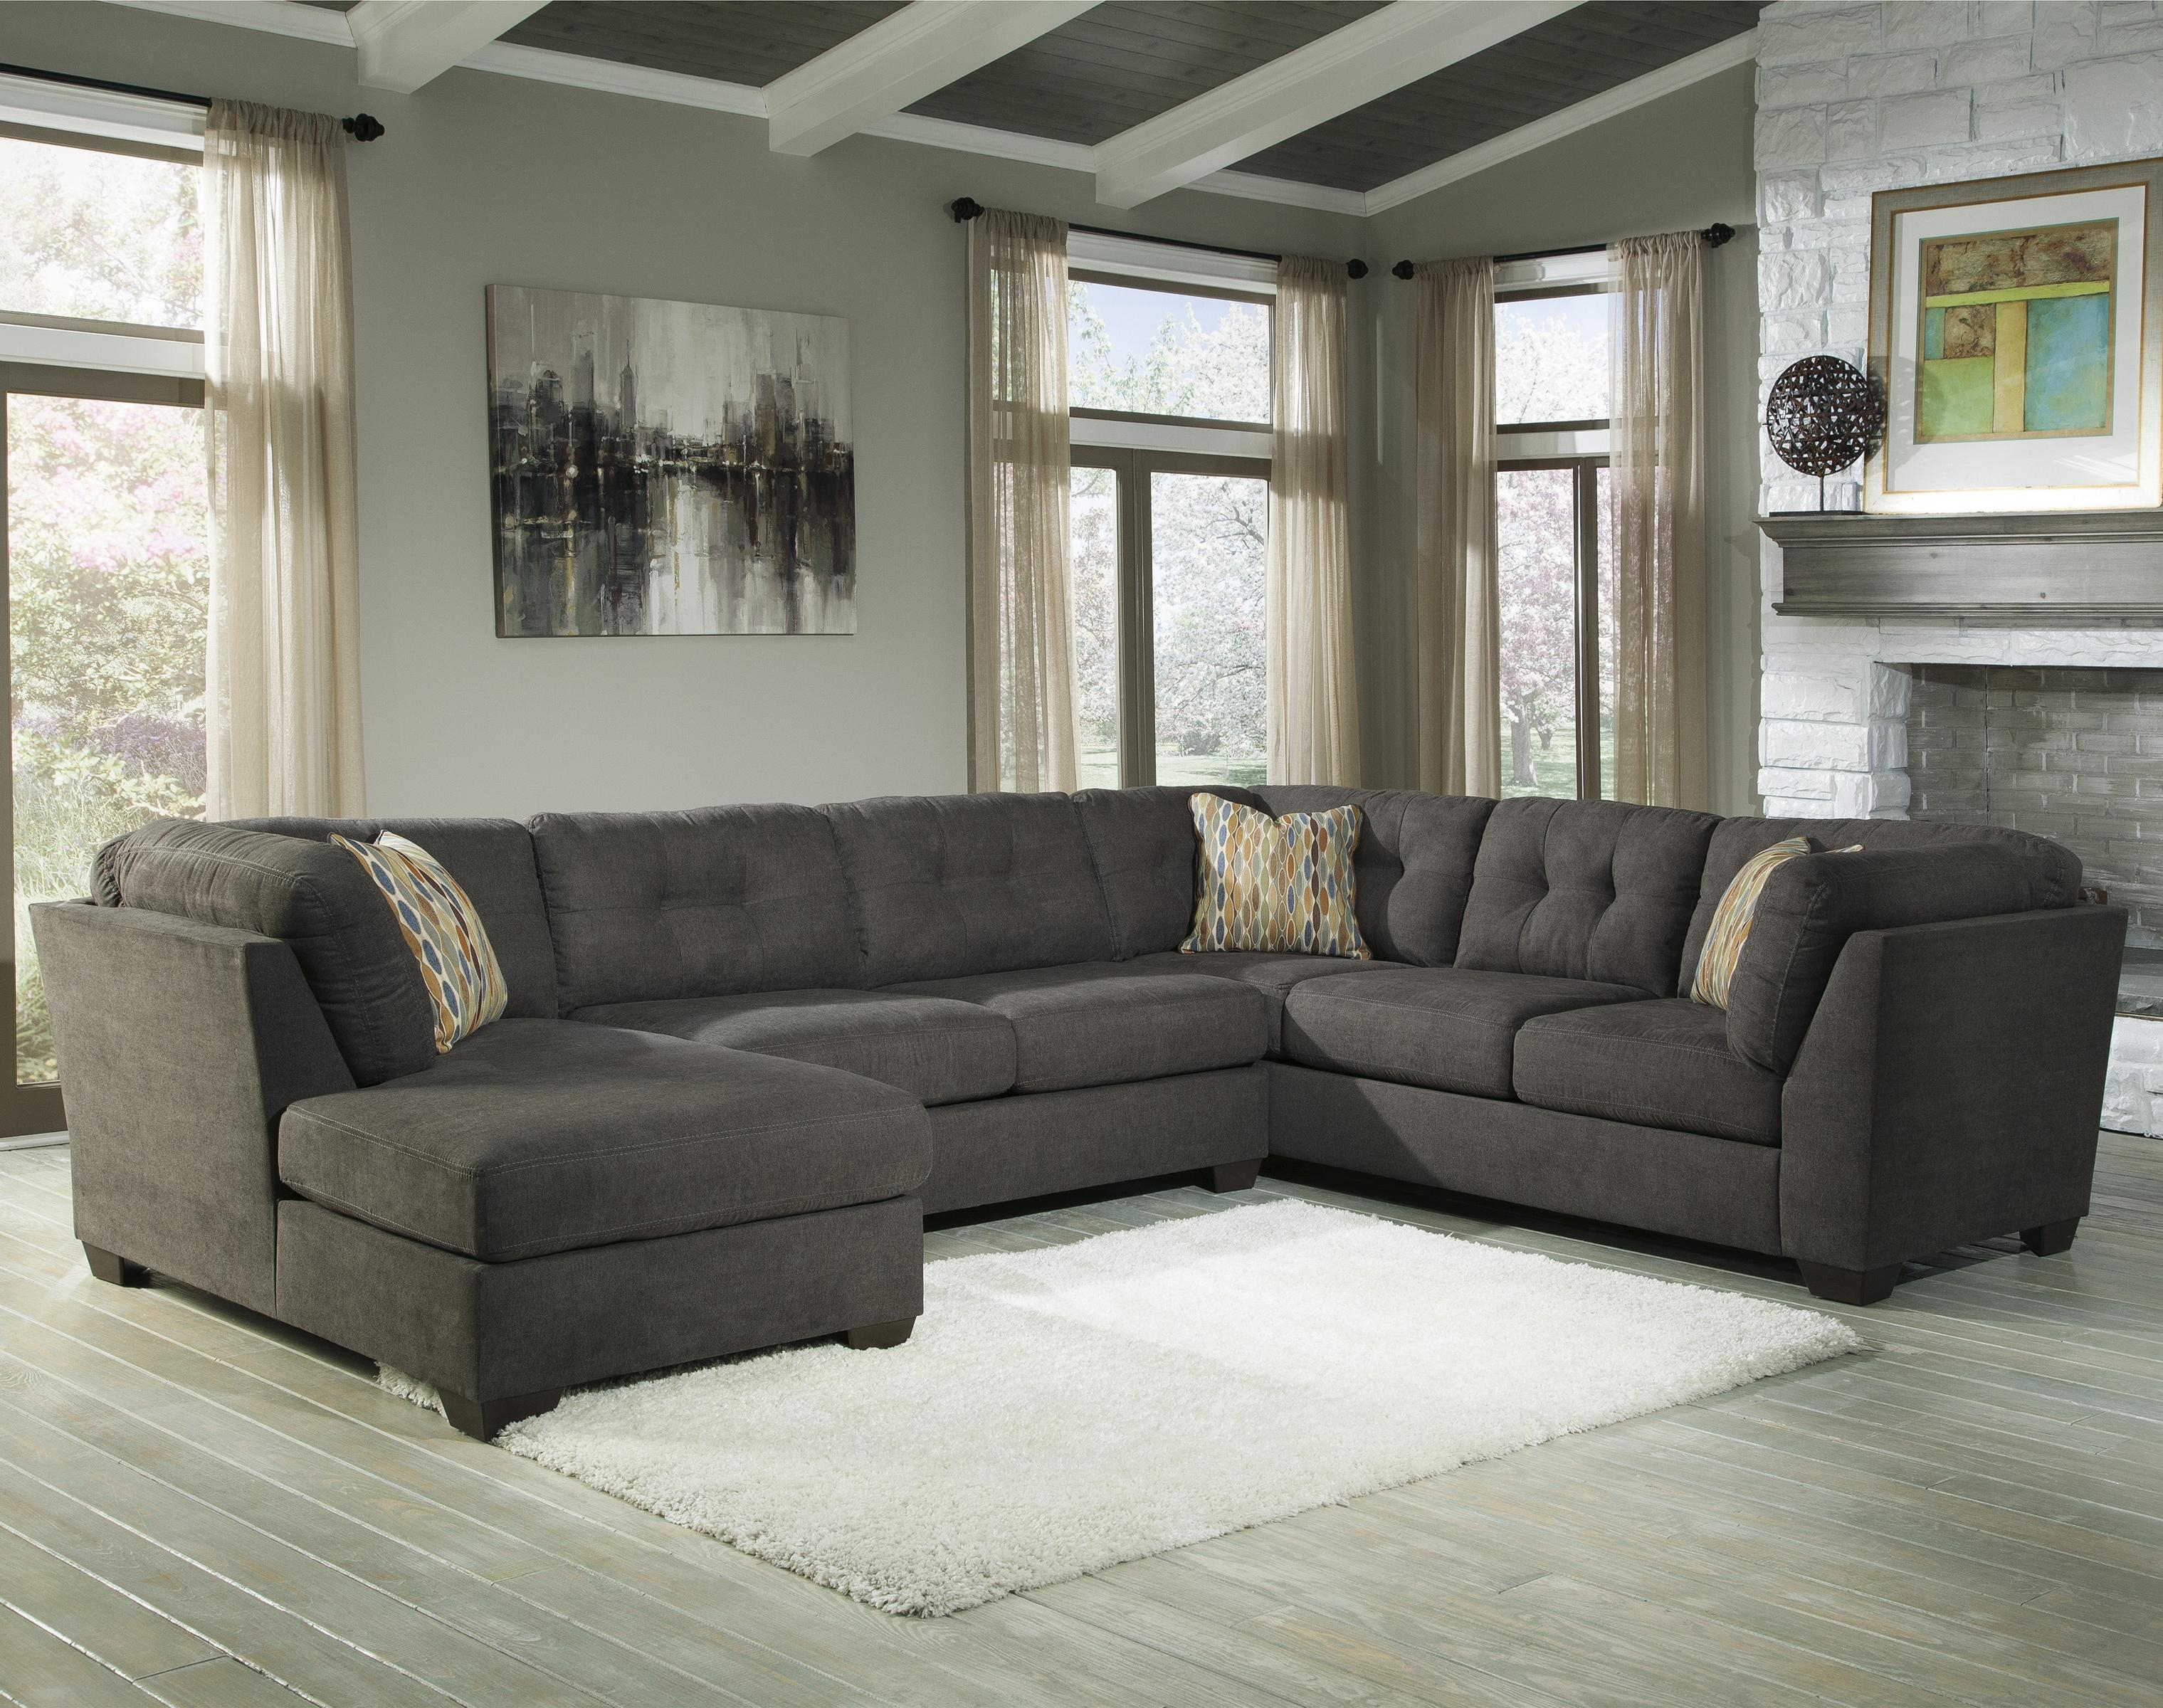 Benchcraft Delta City Steel 3 Piece Modular Sectional W Armless With 3 Piece Sectional Sleeper Sofa (Image 5 of 15)